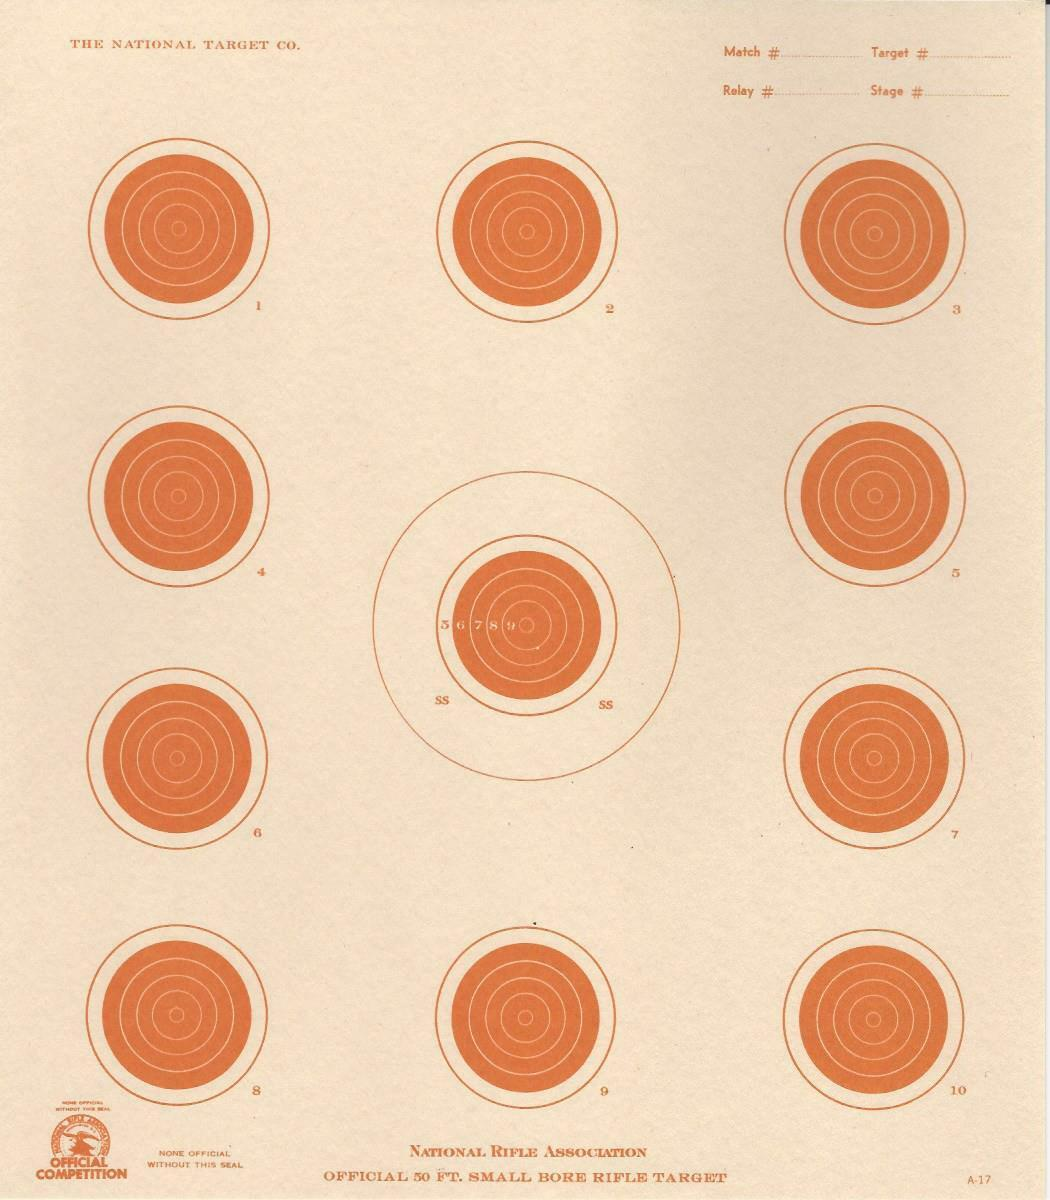 A-17 [A17] 50 Foot Smallbore Rifle Target, 4-Position (box 1,000), orange on Tag